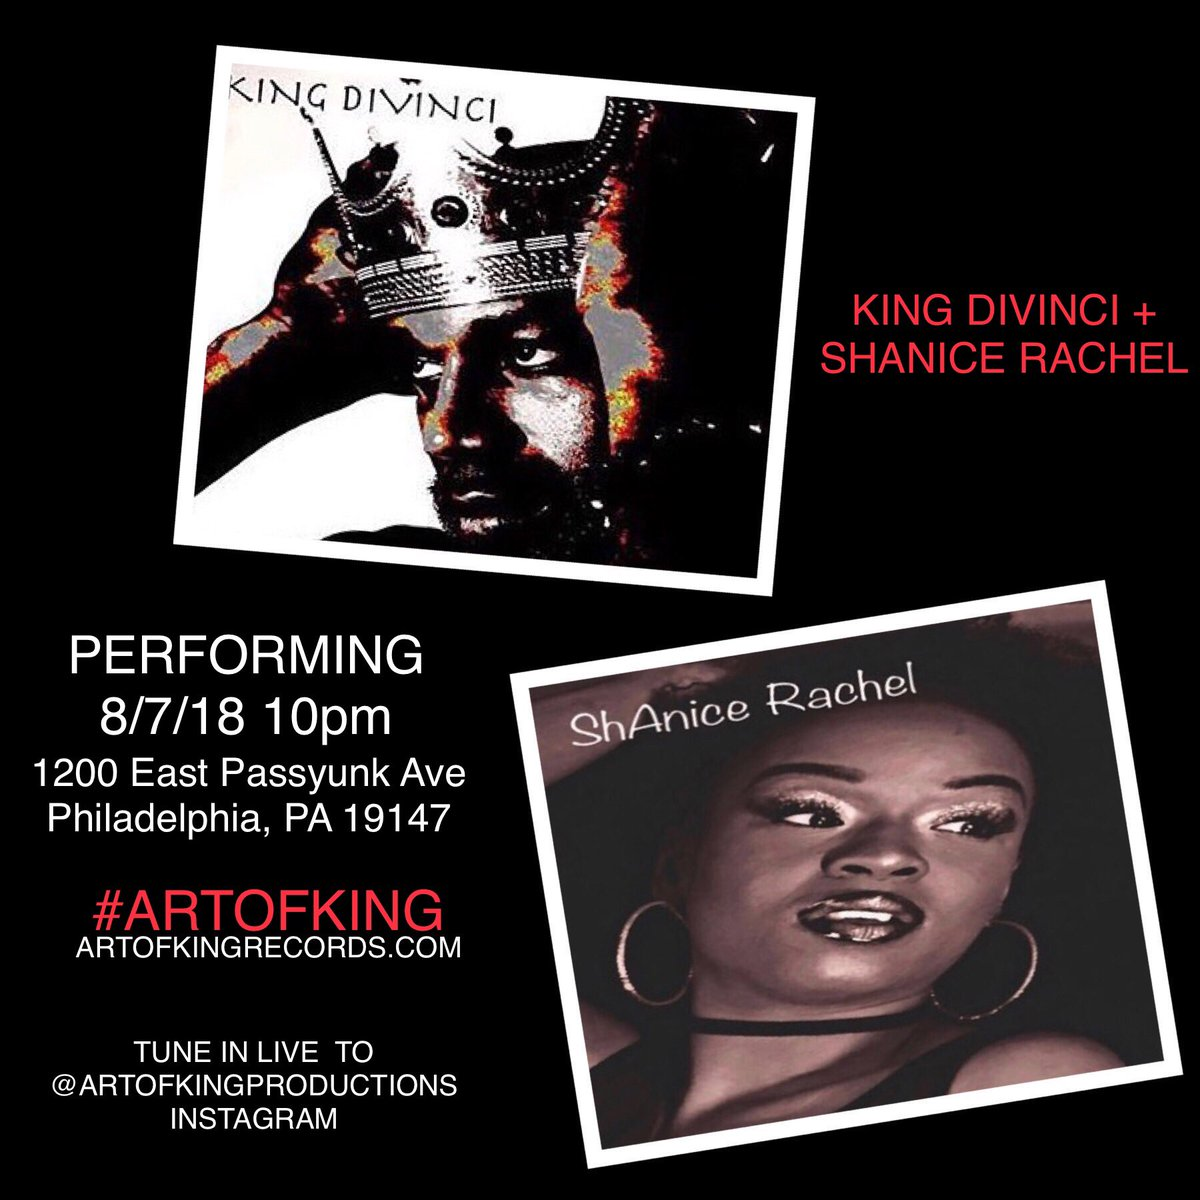 SEE YOU THERE  COME THRU OR TUNE IN @artofkingproductions @shanice_rachel  #ARTOFKING  #phillyhiphop #southphilly #indie #homecoming #interview #phillysupportphilly #rapper #hiphop #philly #baltimore #radio #collegeradio #shanicerachel #instafamous #gainpost #xxl <br>http://pic.twitter.com/1mdIfnlcAb